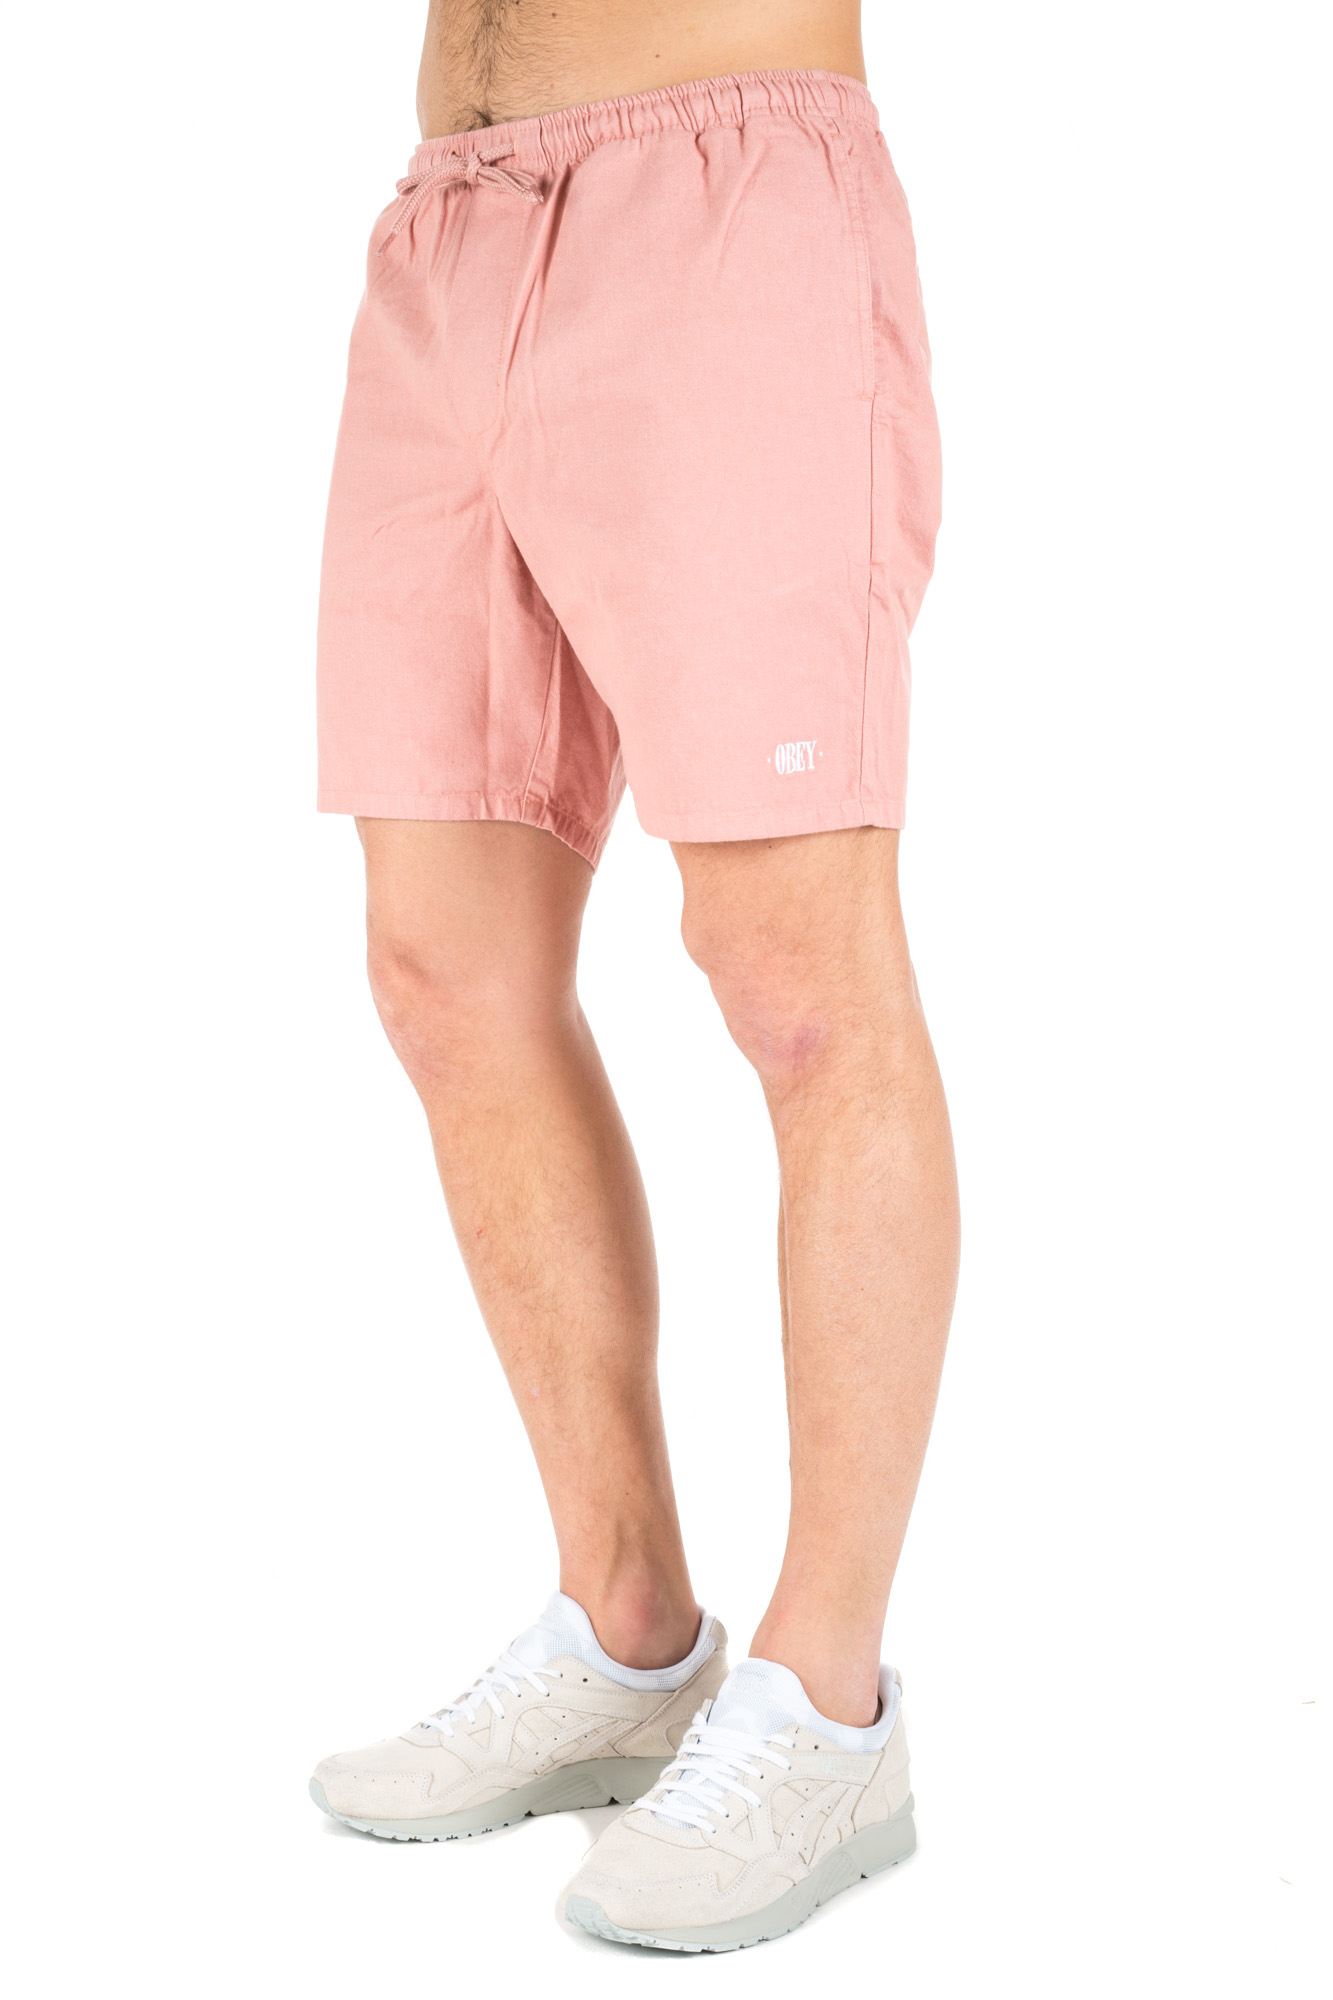 Obey - Elasticated waistband shorts Pink